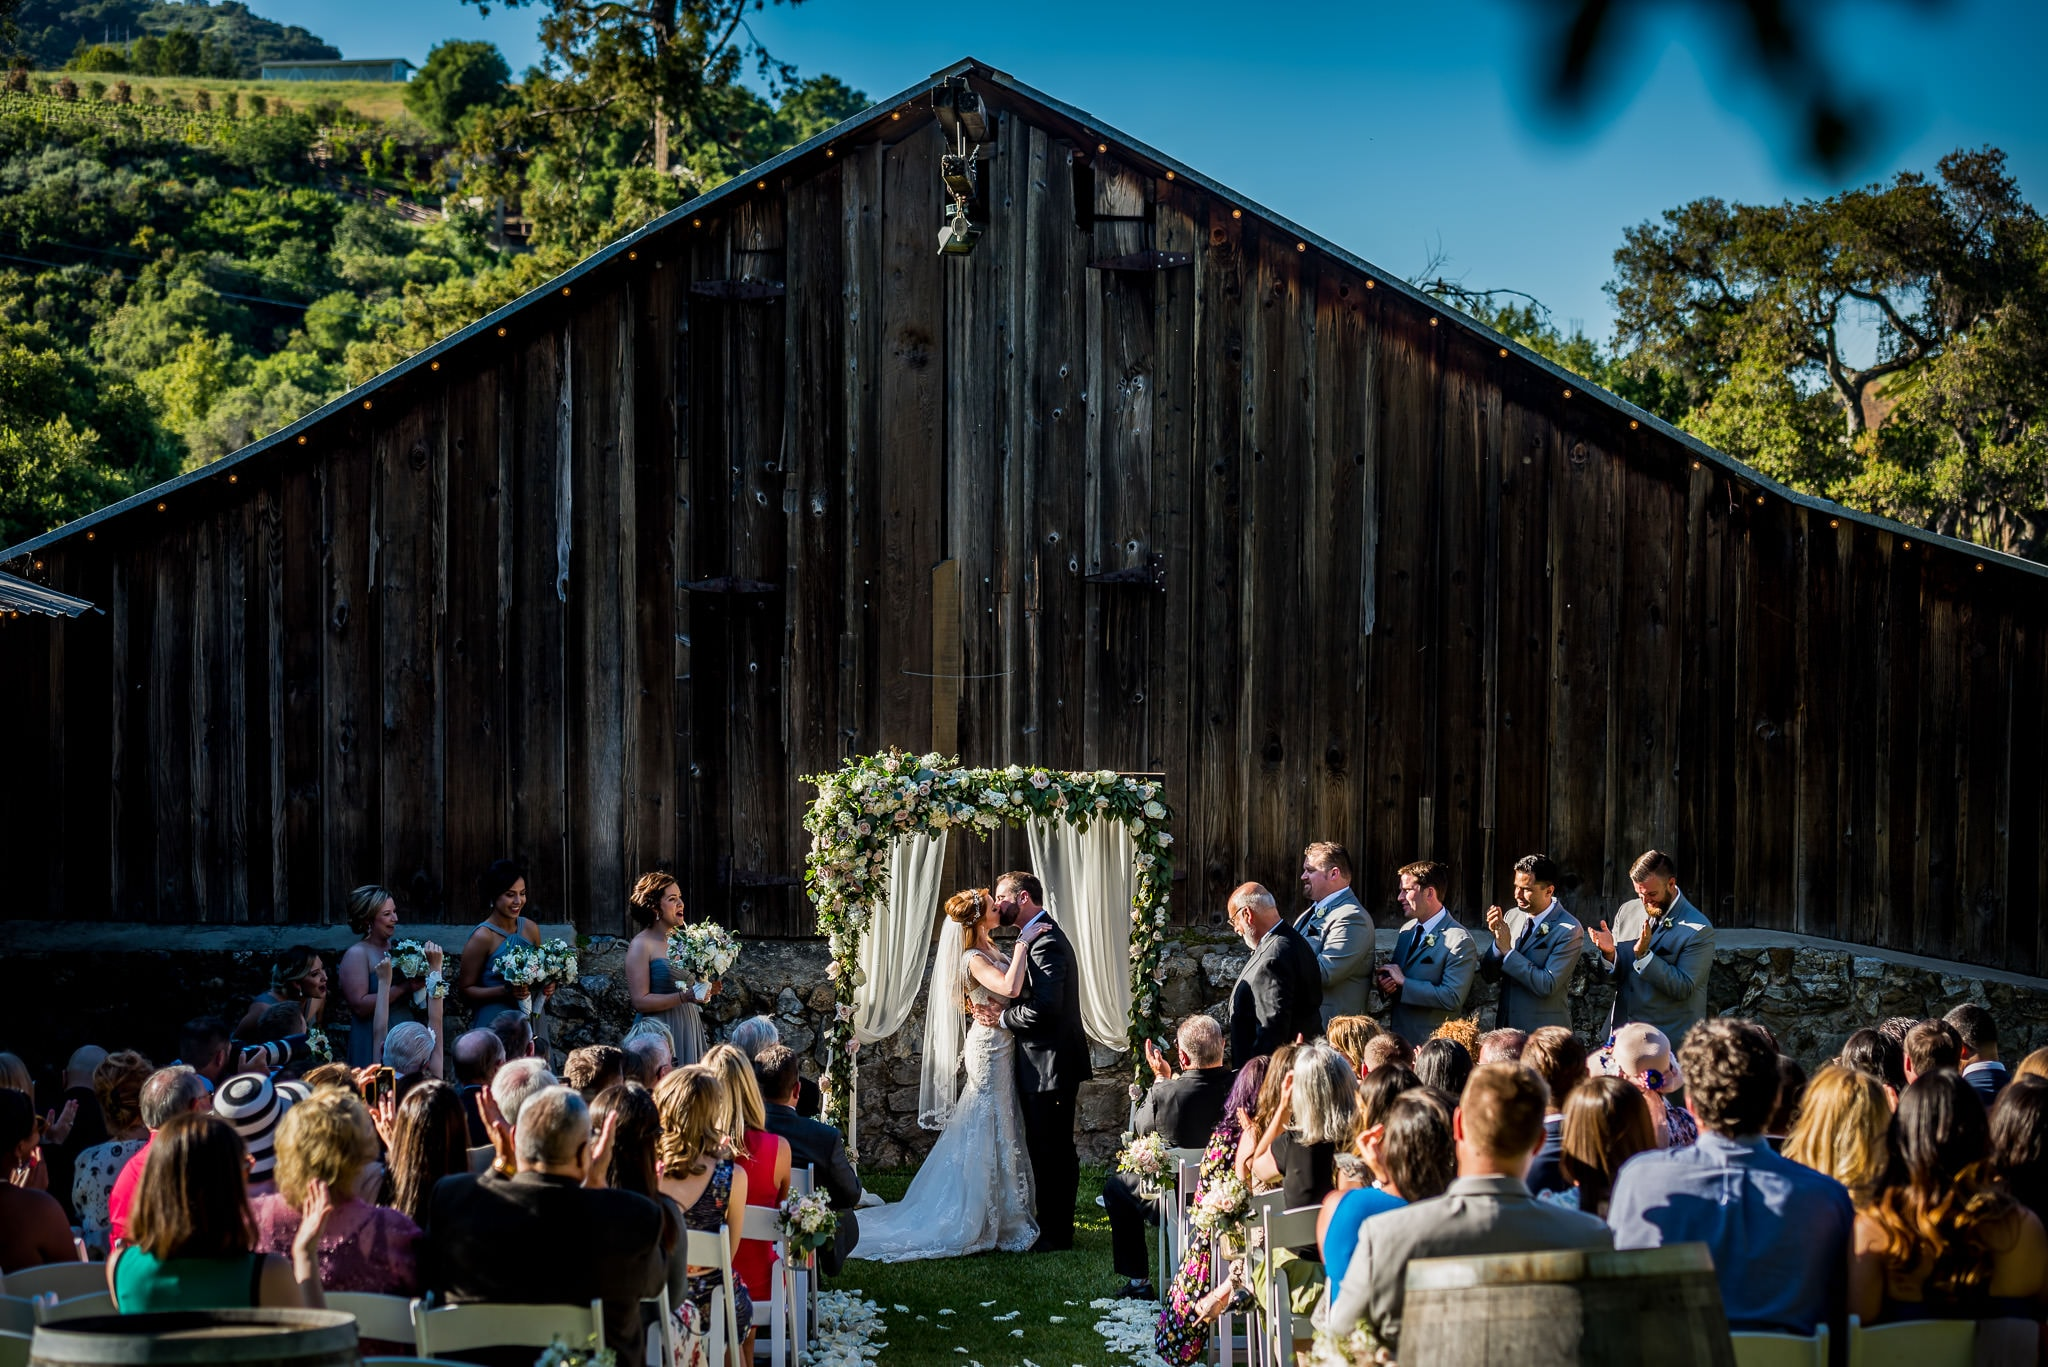 Wedding ceremony kiss in front of weathered old barn at the Picchetti Wintery in Cupertino, California